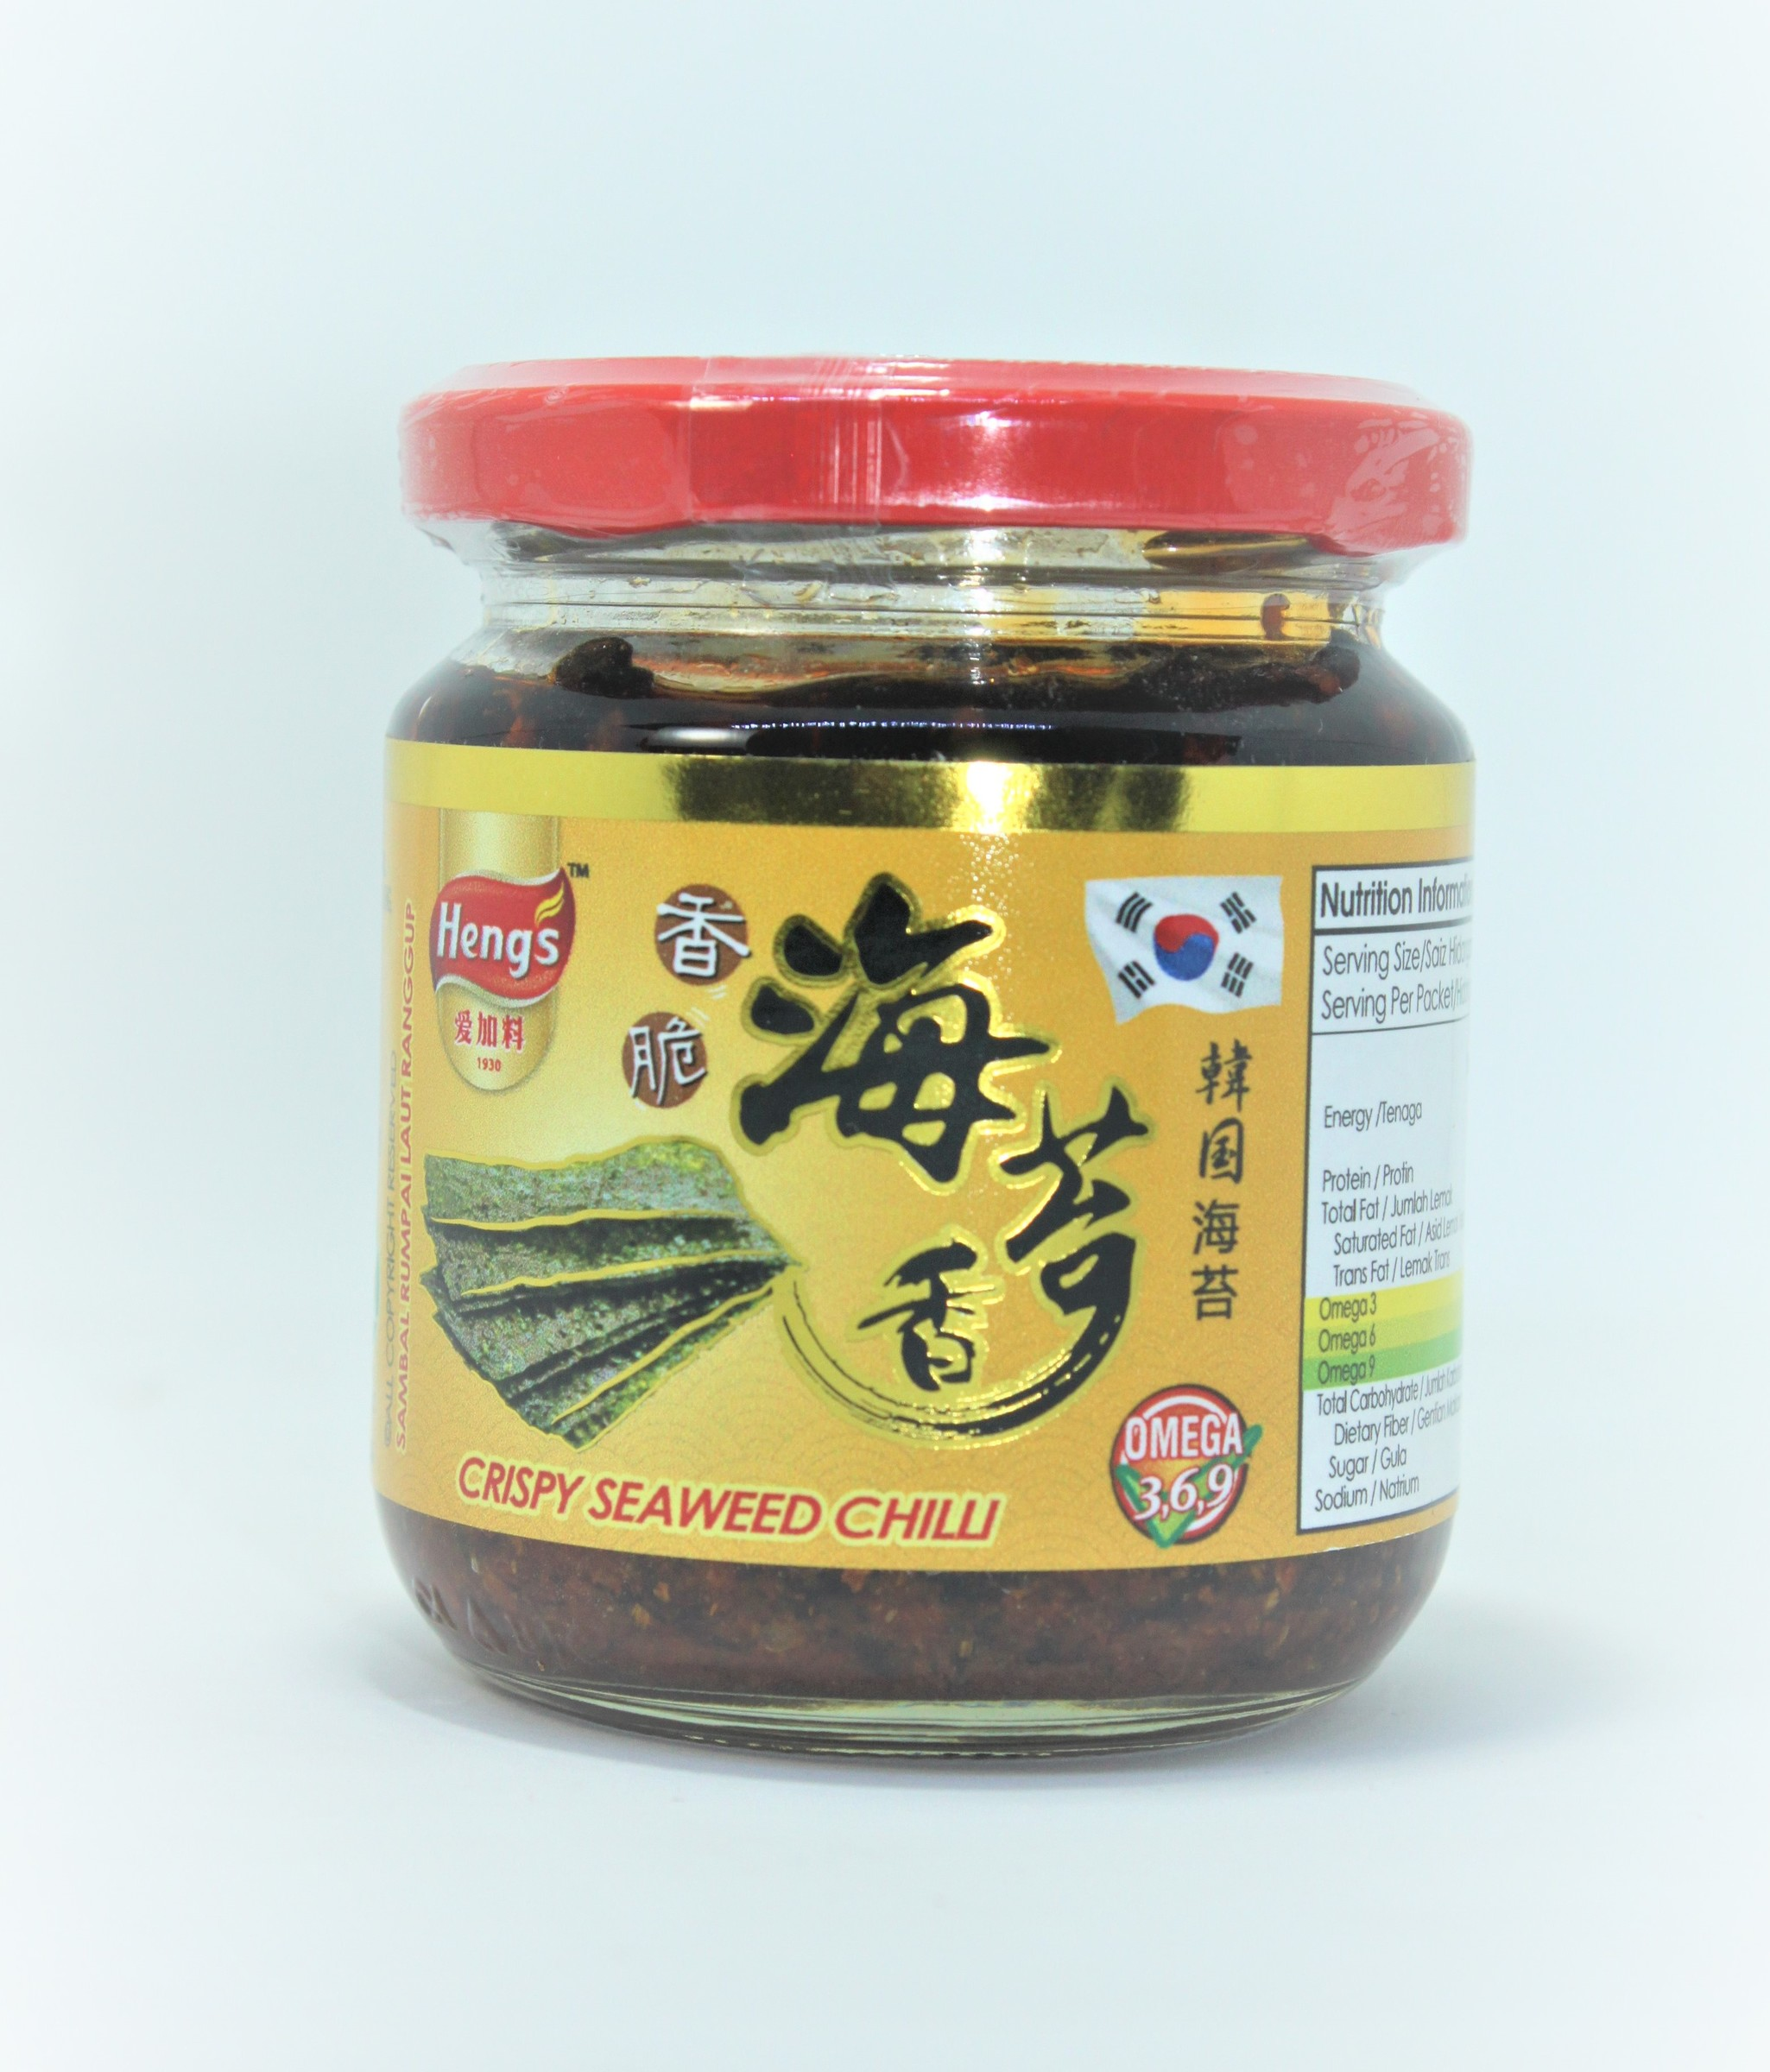 hengs crispy seaweed chilli paste.JPG